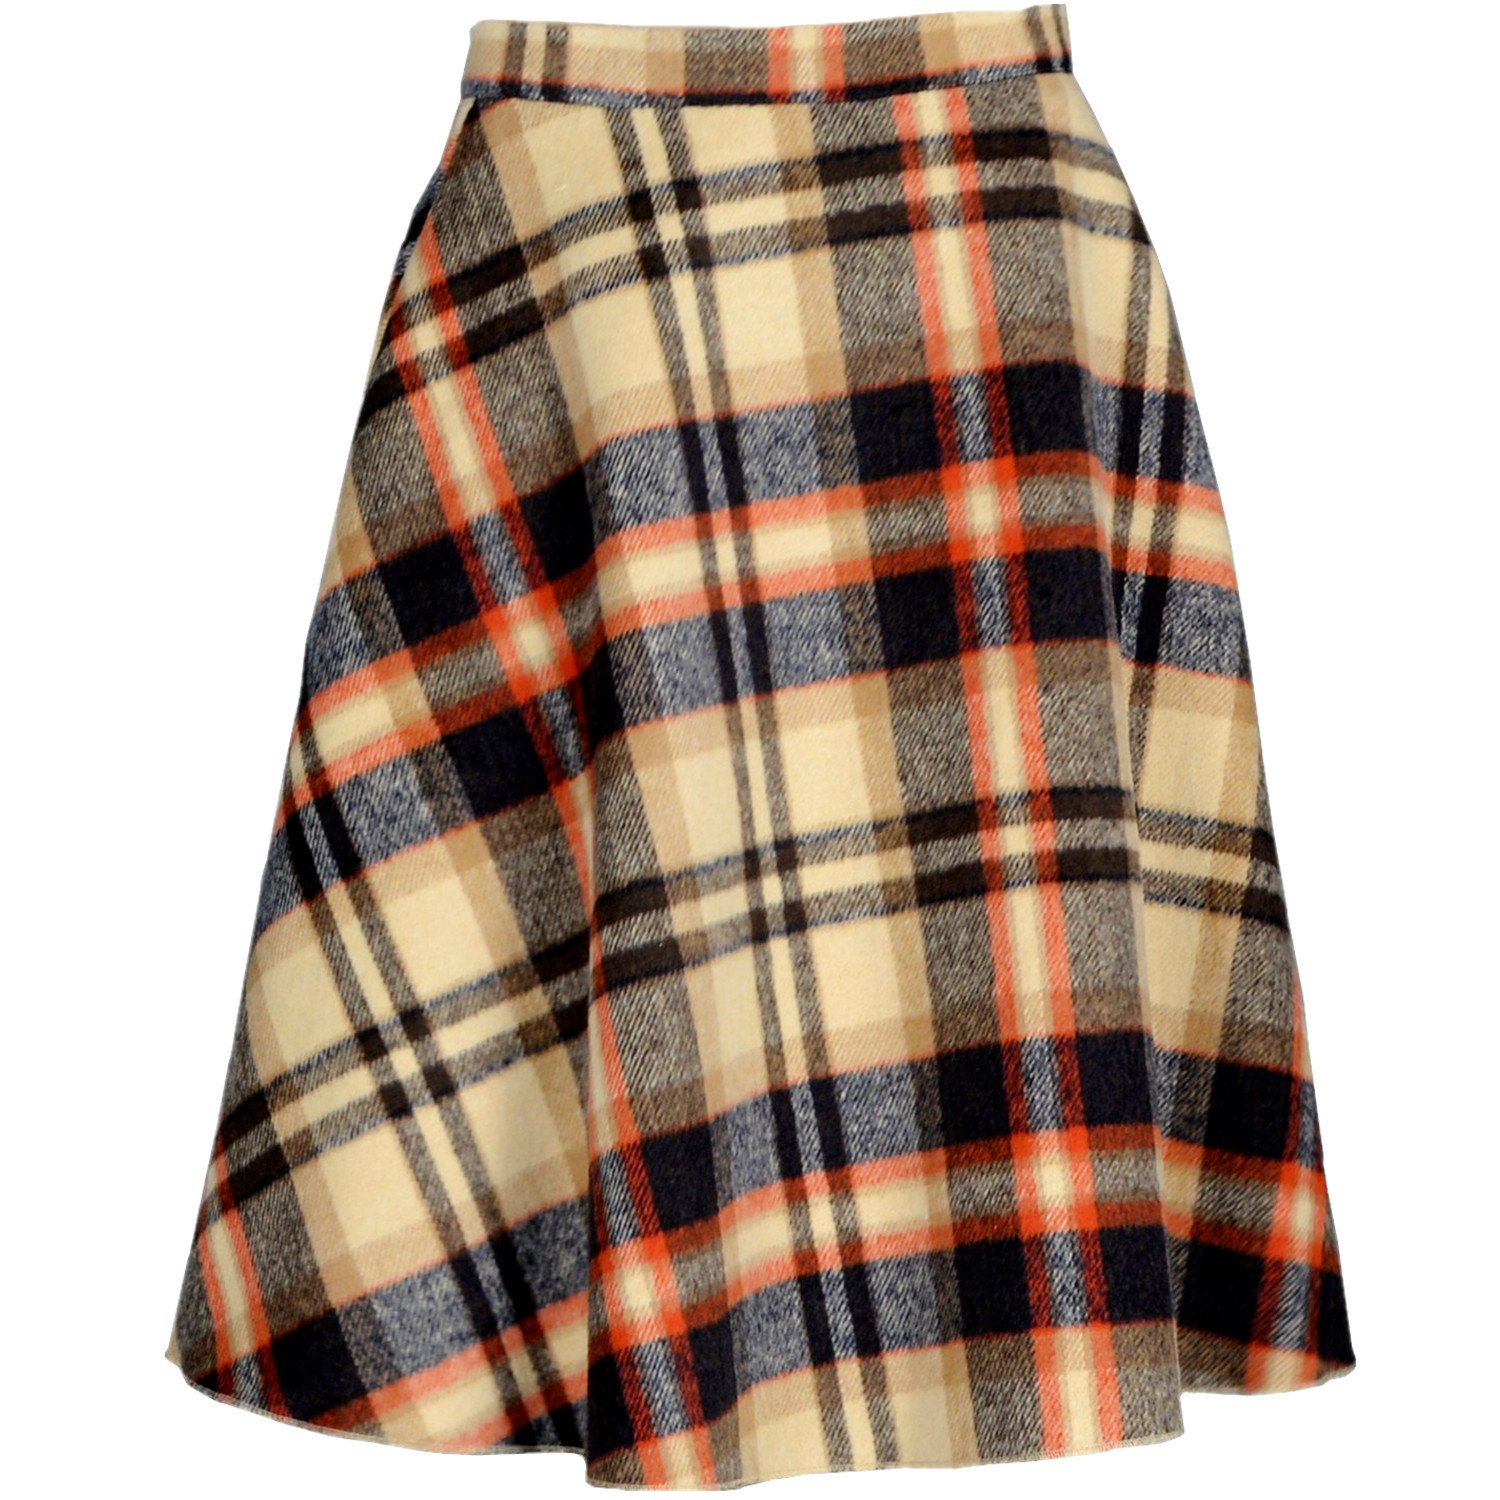 1960s Inspired Fashion: Recreate the Look YSJ Womens Wool Midi Skirt A-Line Pleated Vintage Plaid Winter Swing Skirts  AT vintagedancer.com